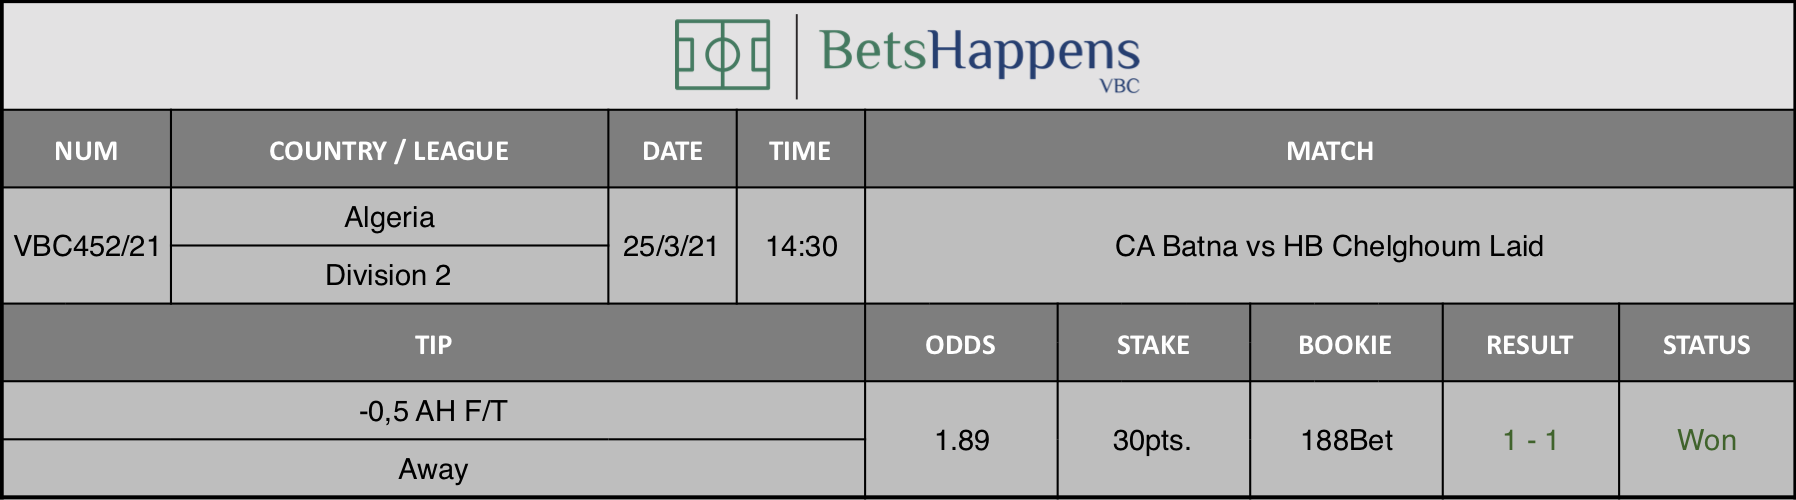 Results of our tip for the CA Batna vs HB Chelghoum Laid match where -0,5 AH F/T Away is recommended.